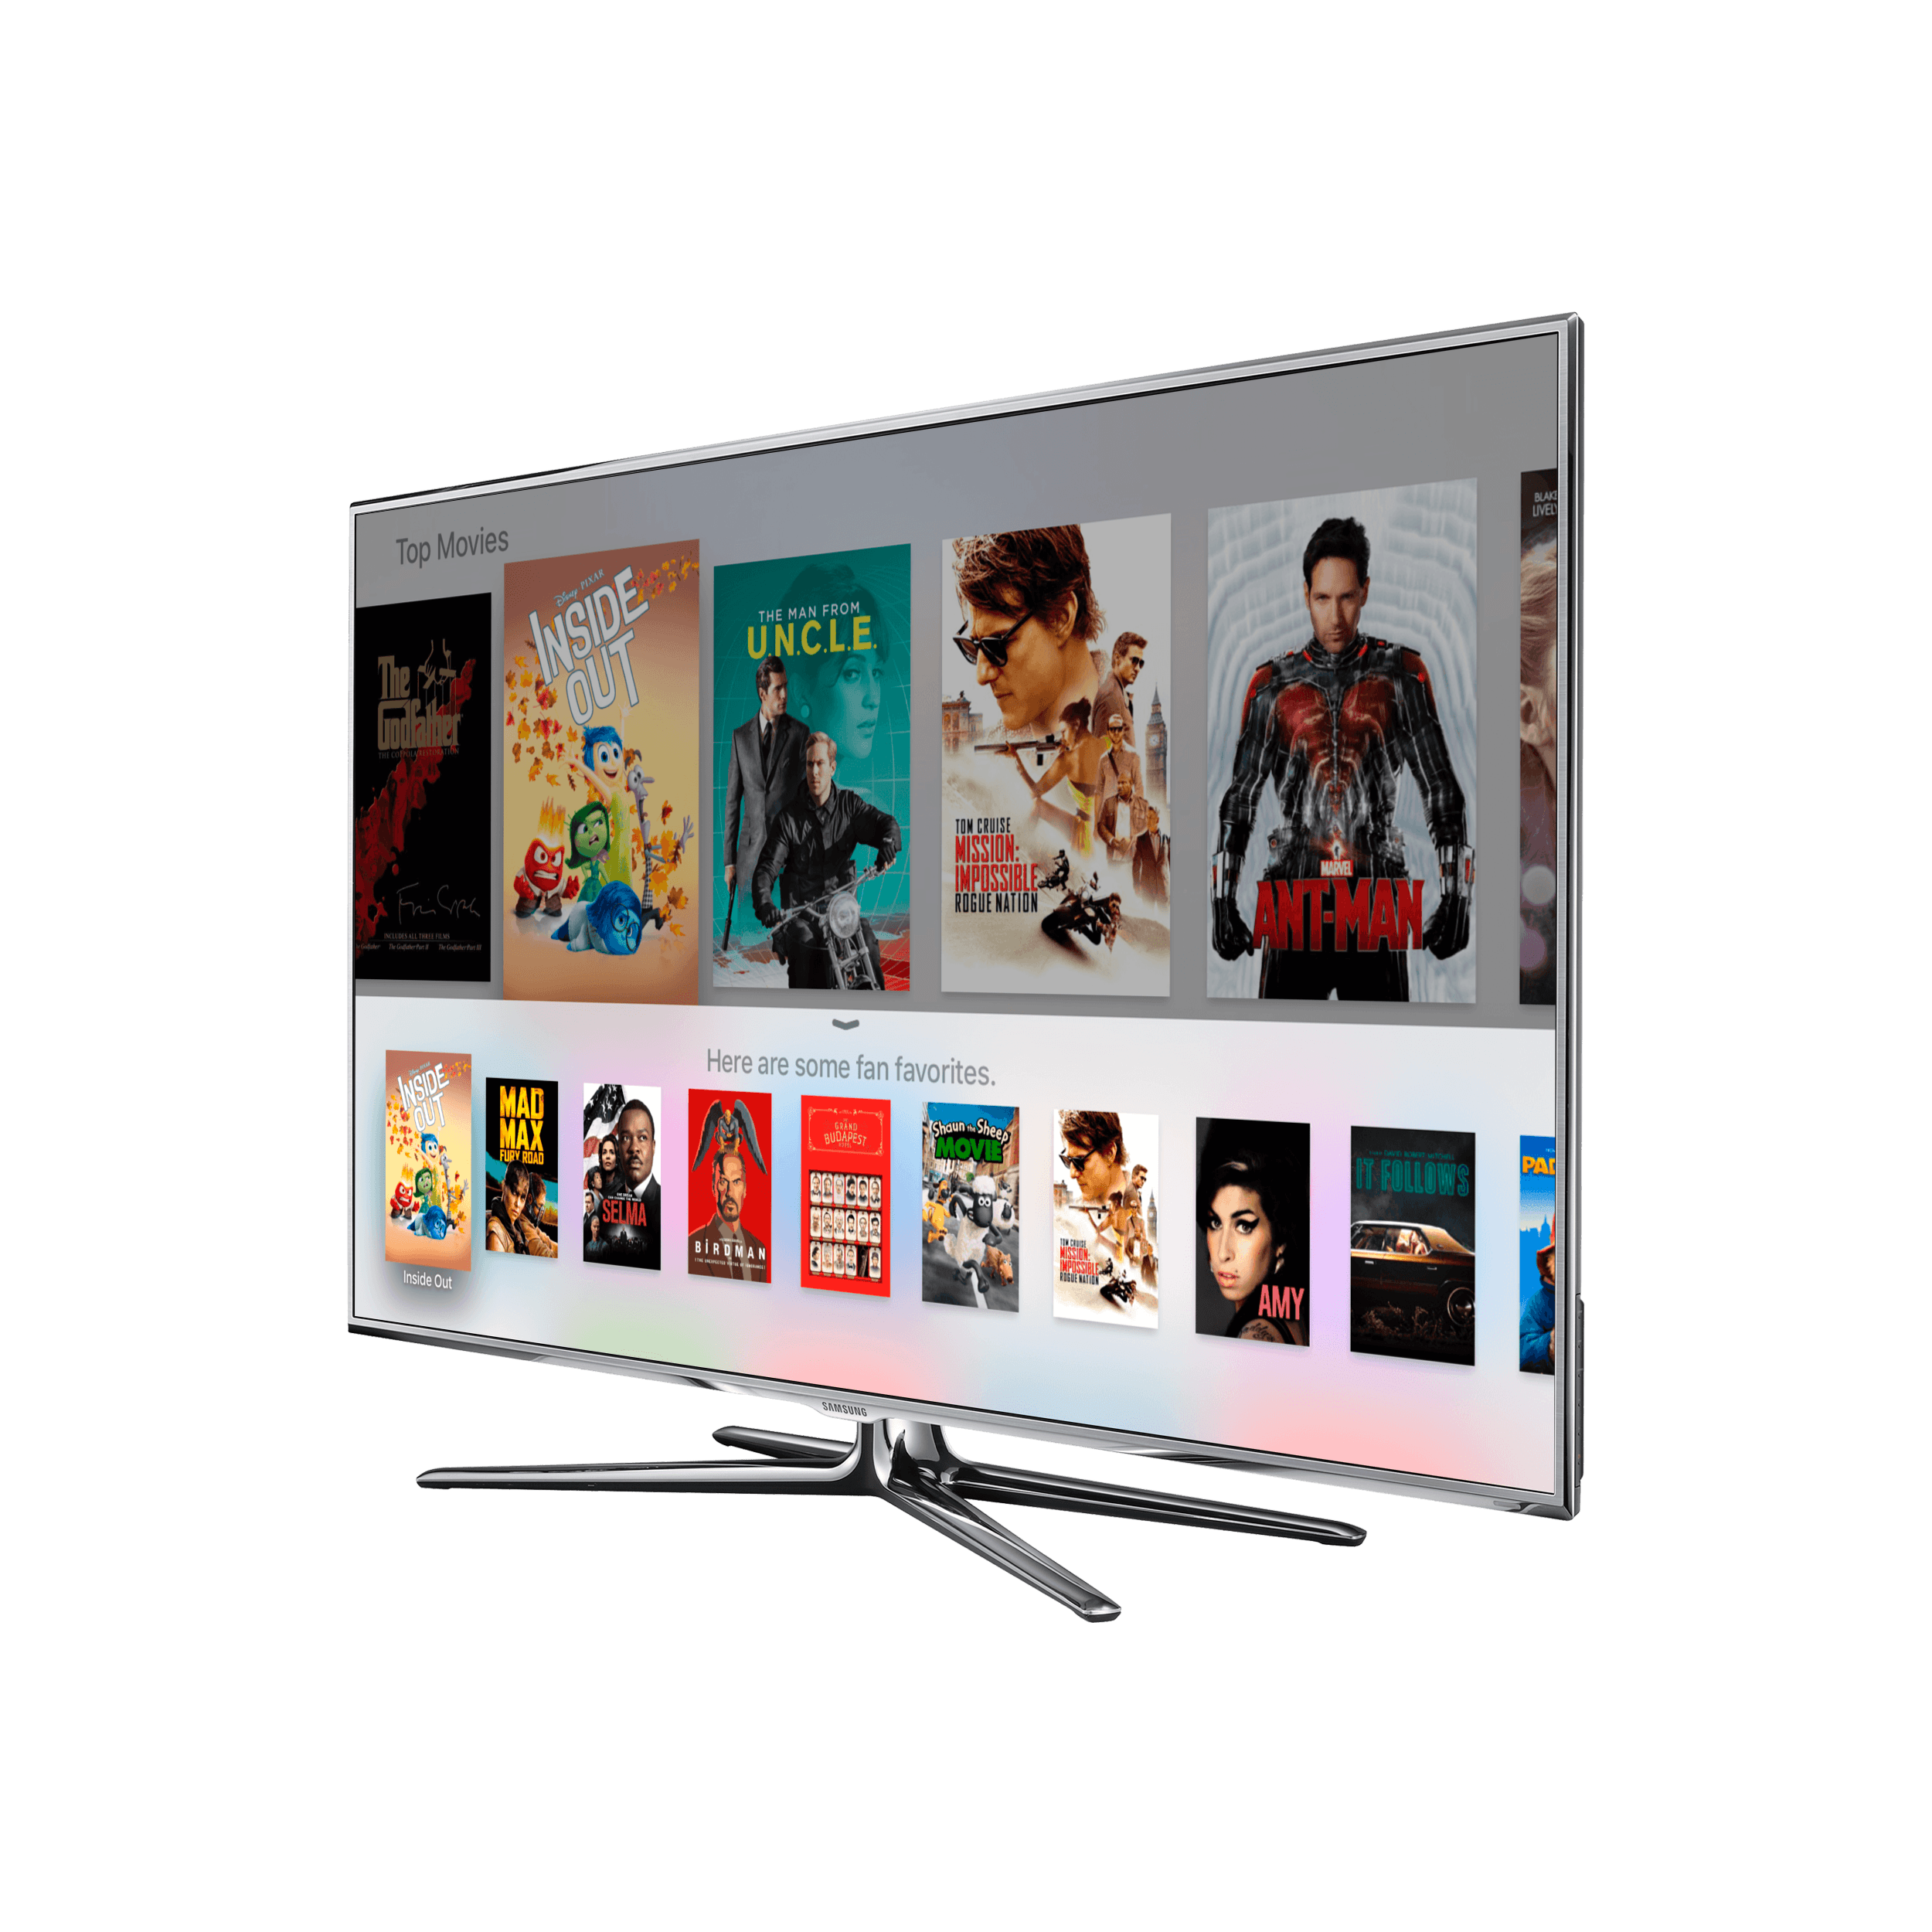 The Apple TV Review — Tools and Toys